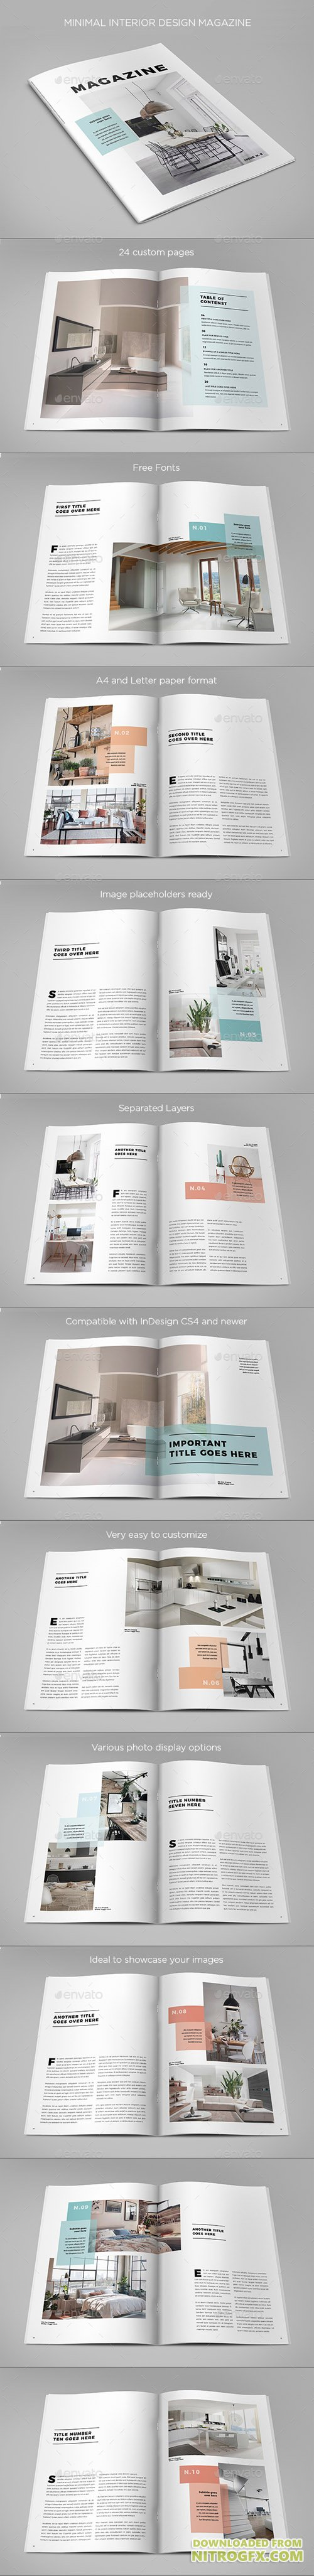 Minimal Interior Design Magazine 20388375